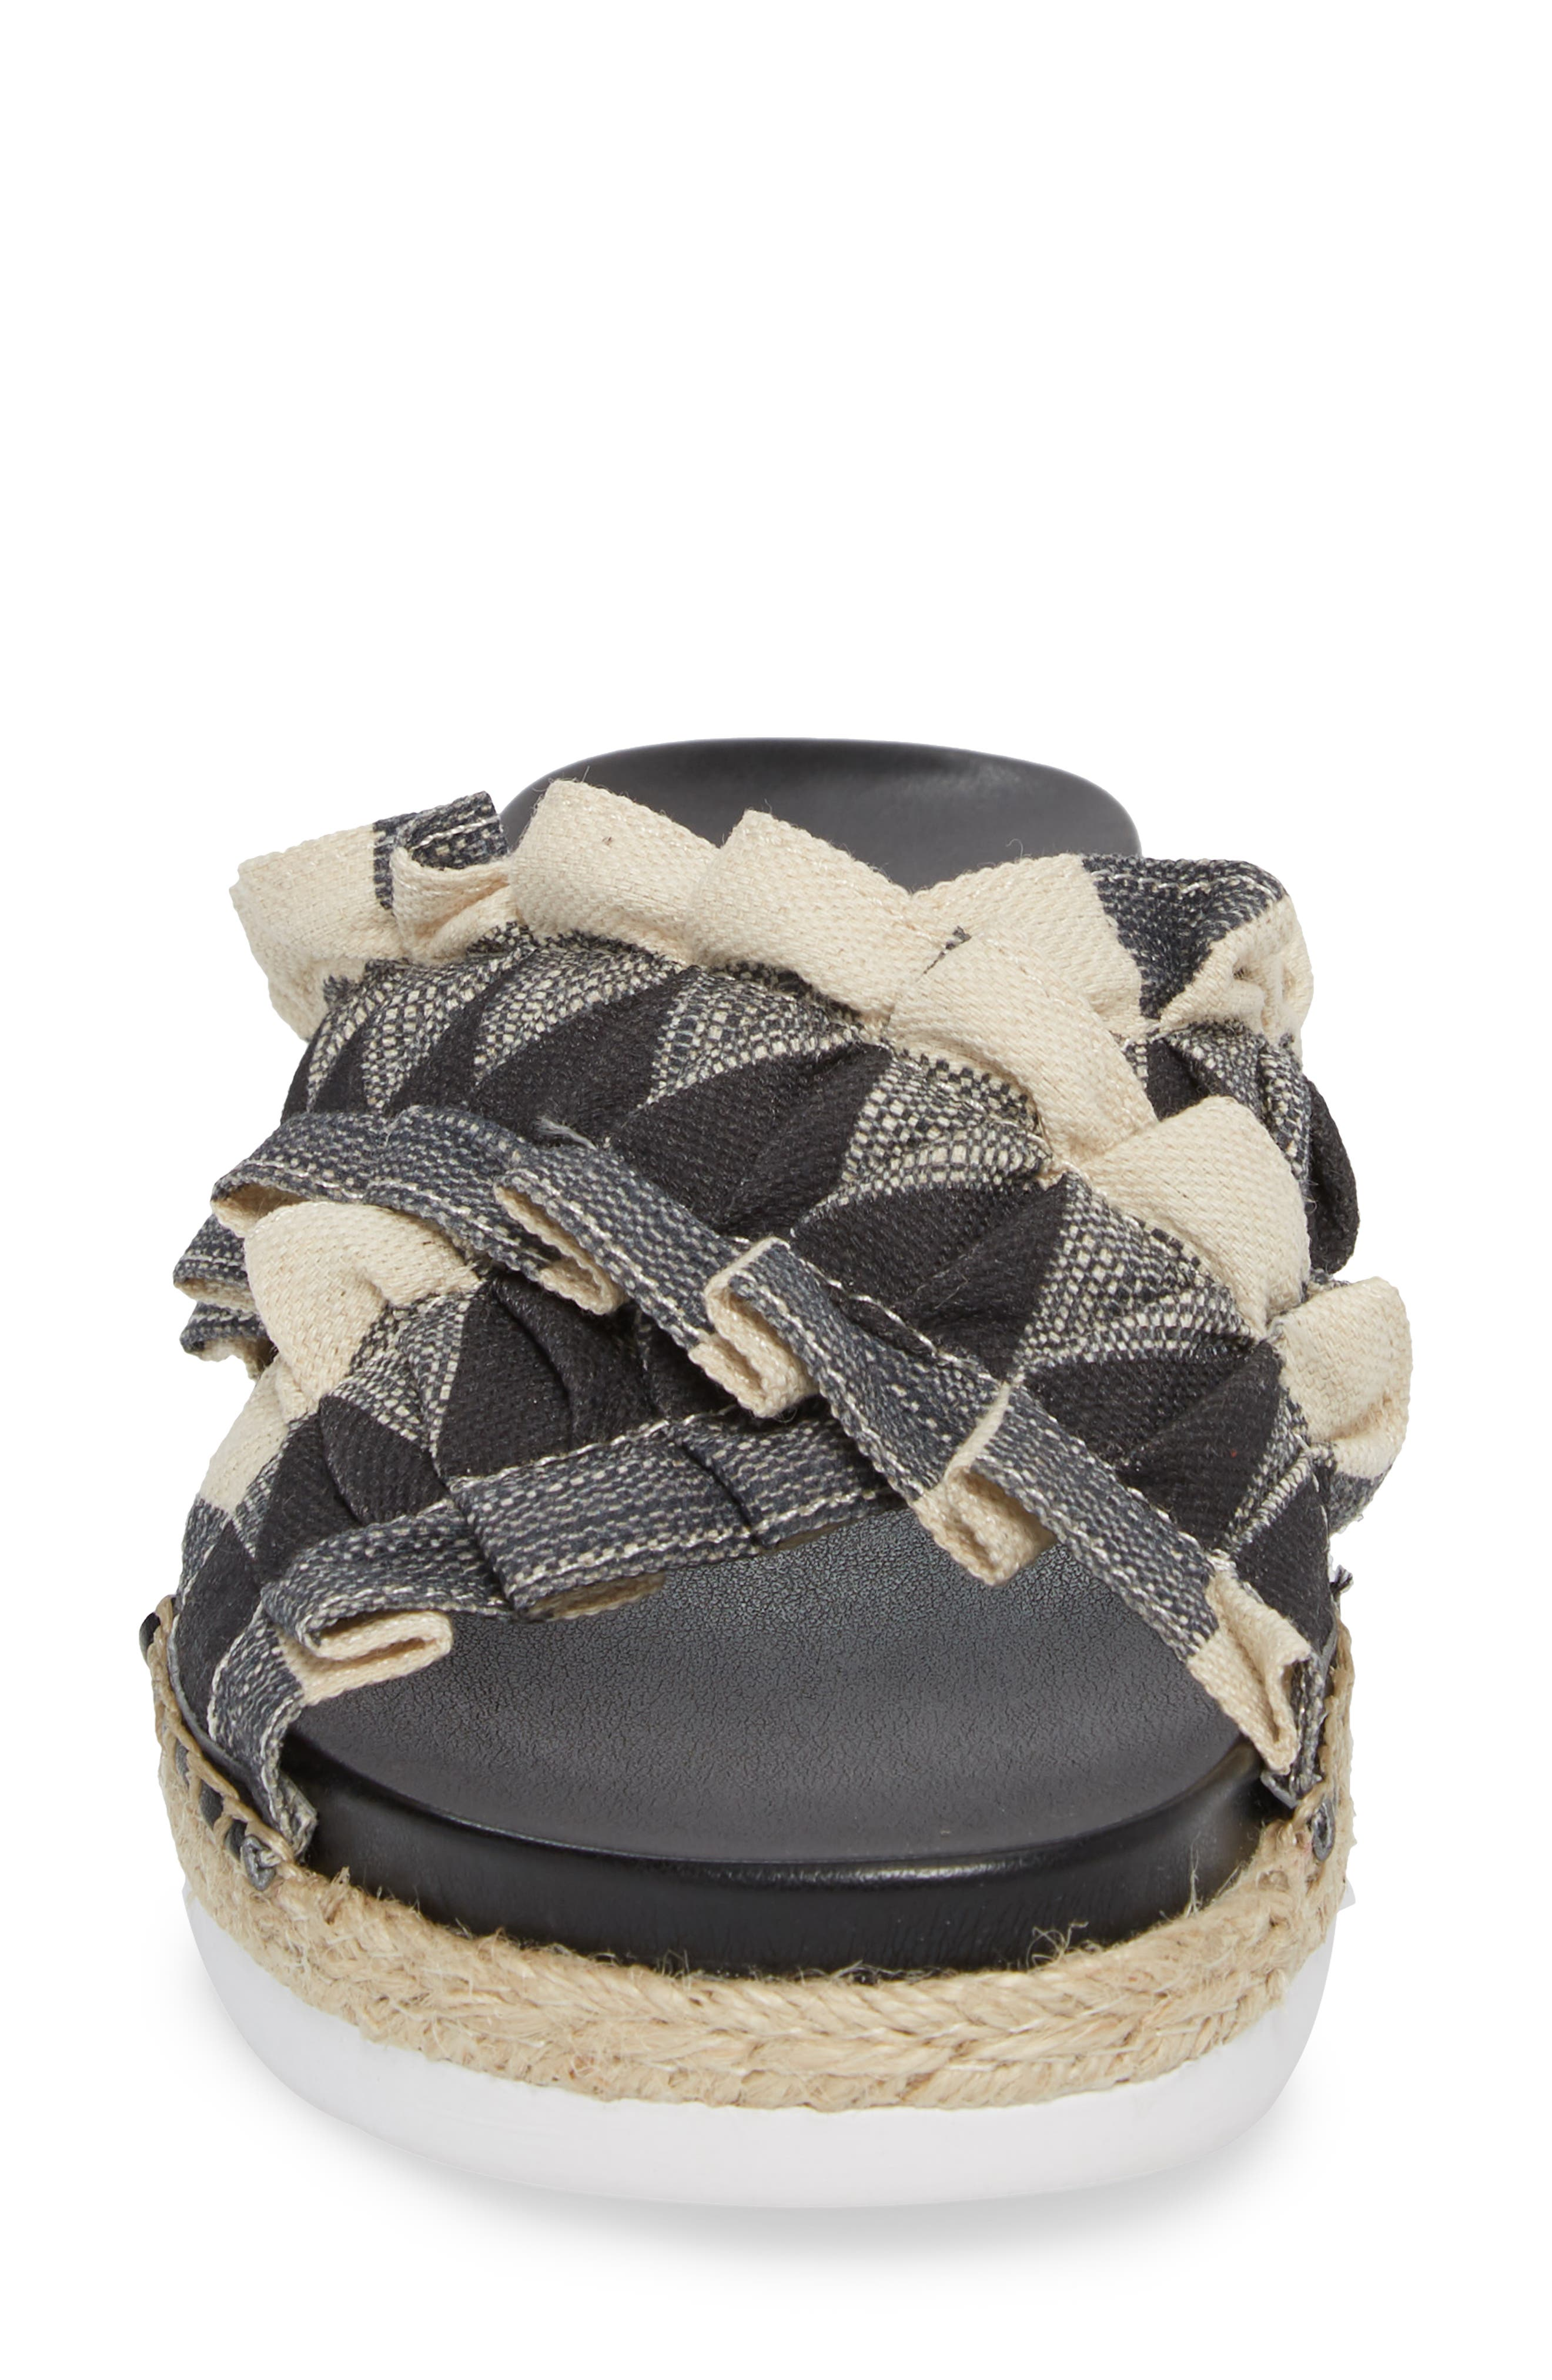 Salyn Slide Sandal,                             Alternate thumbnail 4, color,                             BLACK GINGHAM LINEN FABRIC